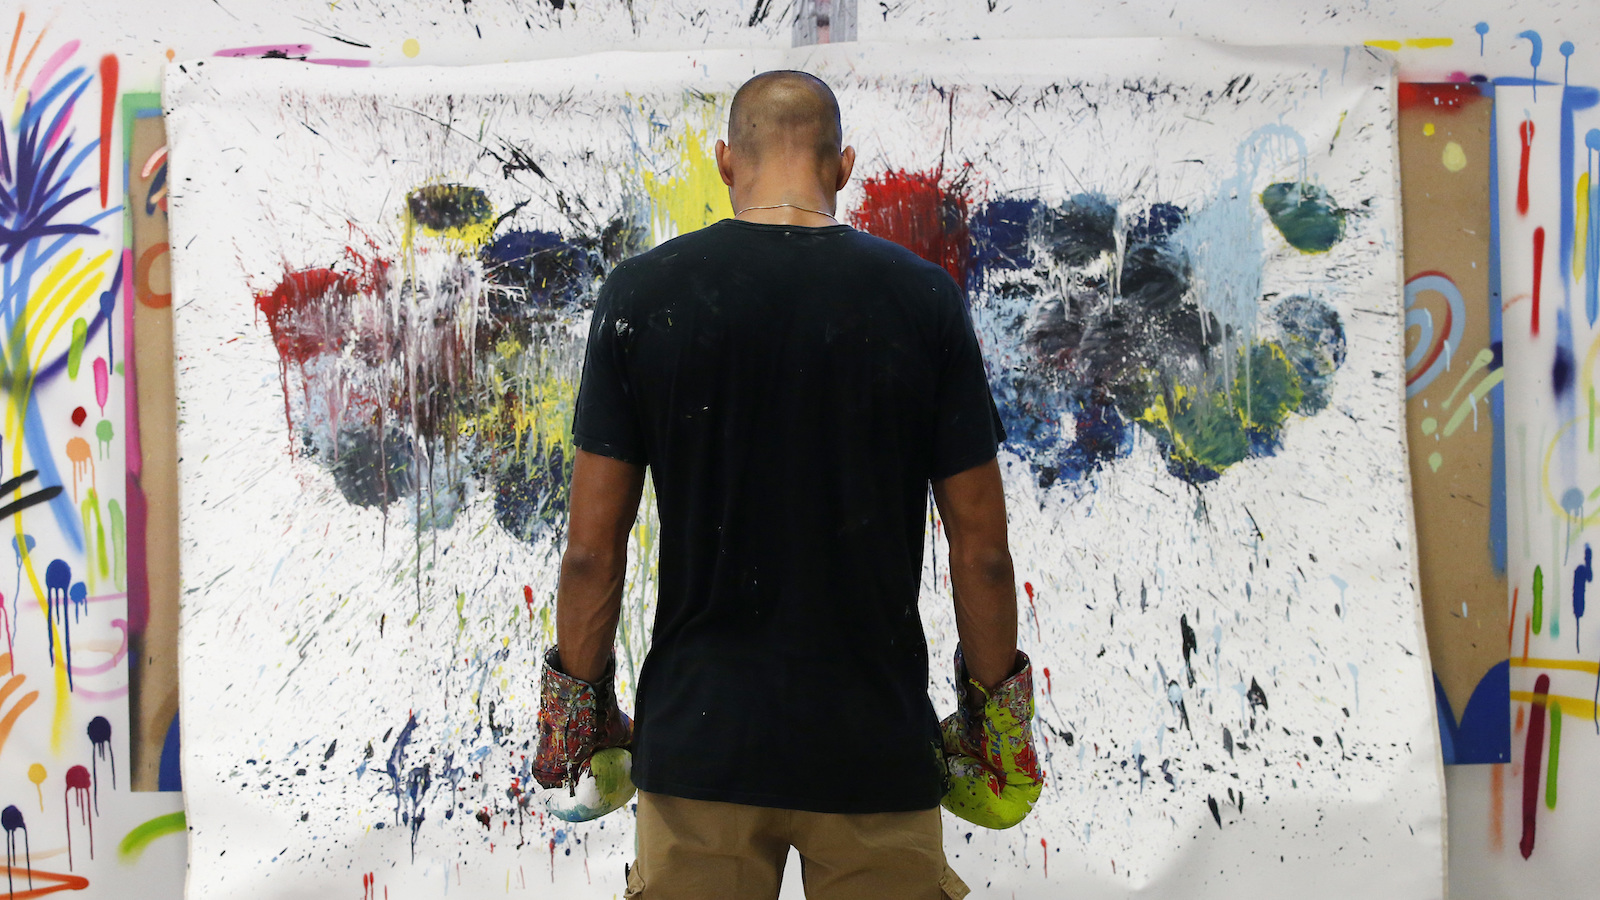 """In this photo taken on Tuesday, Sept. 6, 2016 Omar Hassan poses in front of his creation """"Breaking Through Milano"""" in his studio in Milan, Italy. When he creates art work, Omar Hassan doesn't get out paint brushes. He gets out his boxing gloves. Hassan, a 29-year-old artist and boxer, has combined his two passions, with the goal to bring the disciplines closer. Hassan, born in Milan to an Italian mother and Egyptian father, creates the works by dipping his glove in paint, and punching the canvas stretched over cardboard to keep it from breaking. He calls the series ''Breaking Through Milano'' His paintings sell from 8,000 to 40,000 euros, which he calls ''a great satisfaction, but not the goal.'' (AP Photo/Antonio Calanni)"""